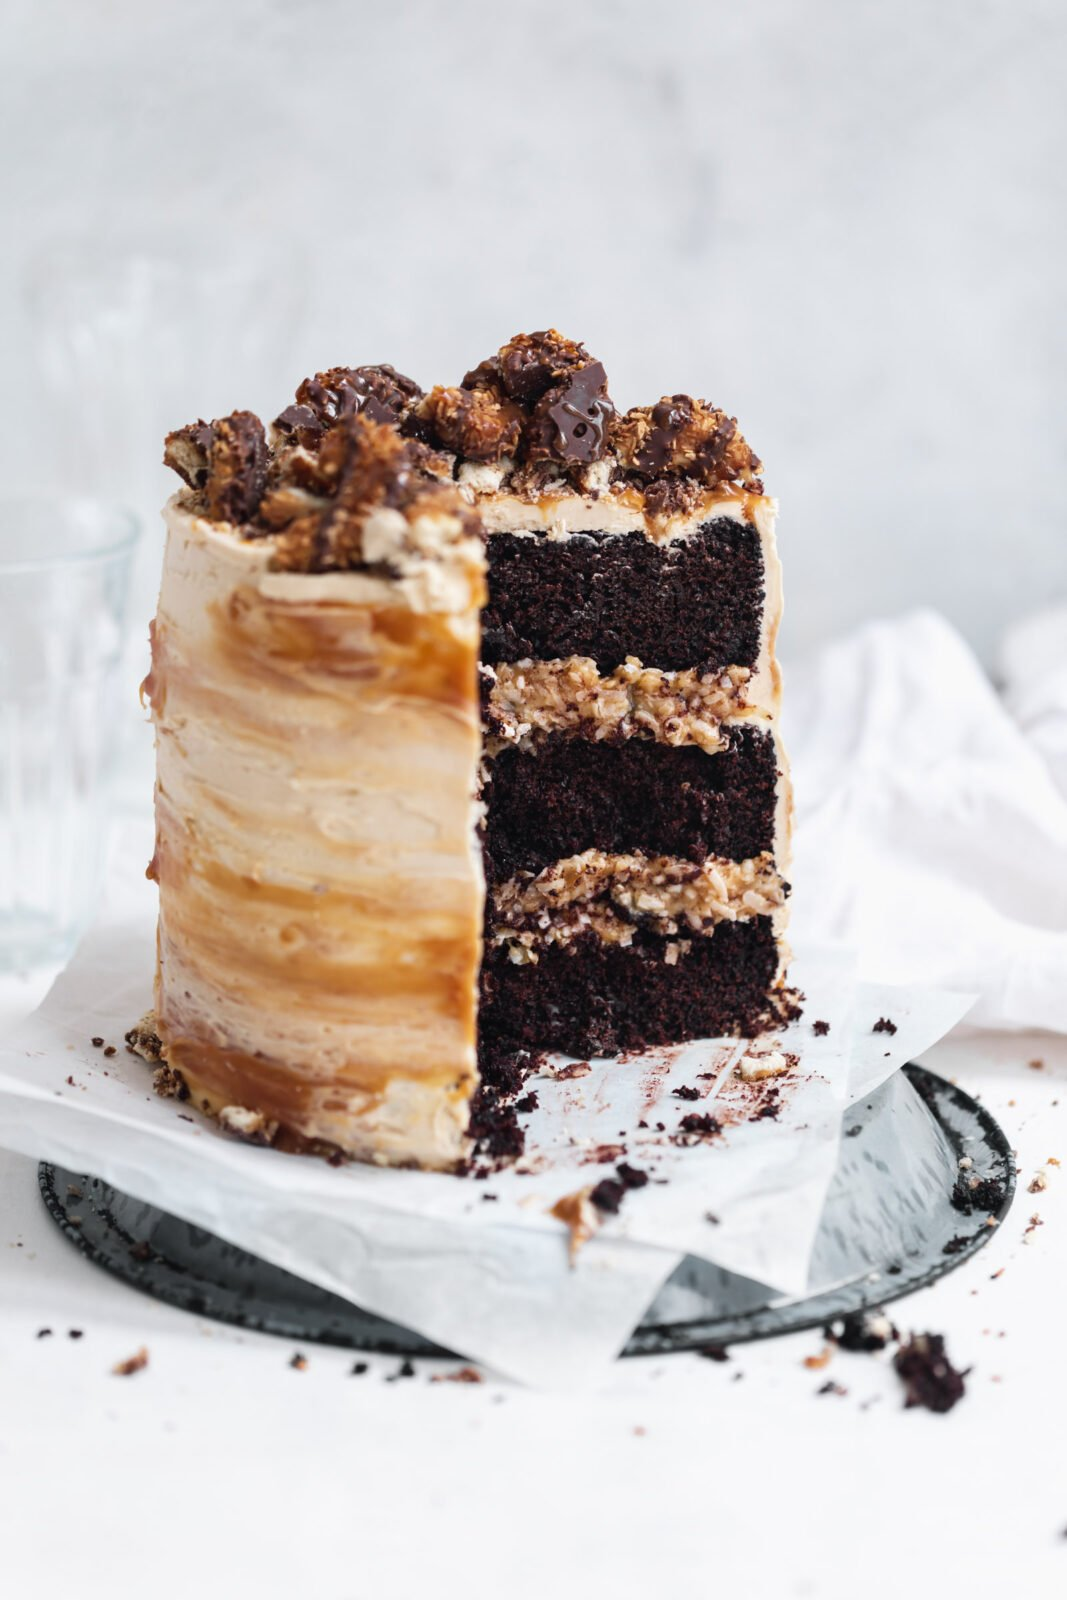 samoa cake with coconut caramel filling